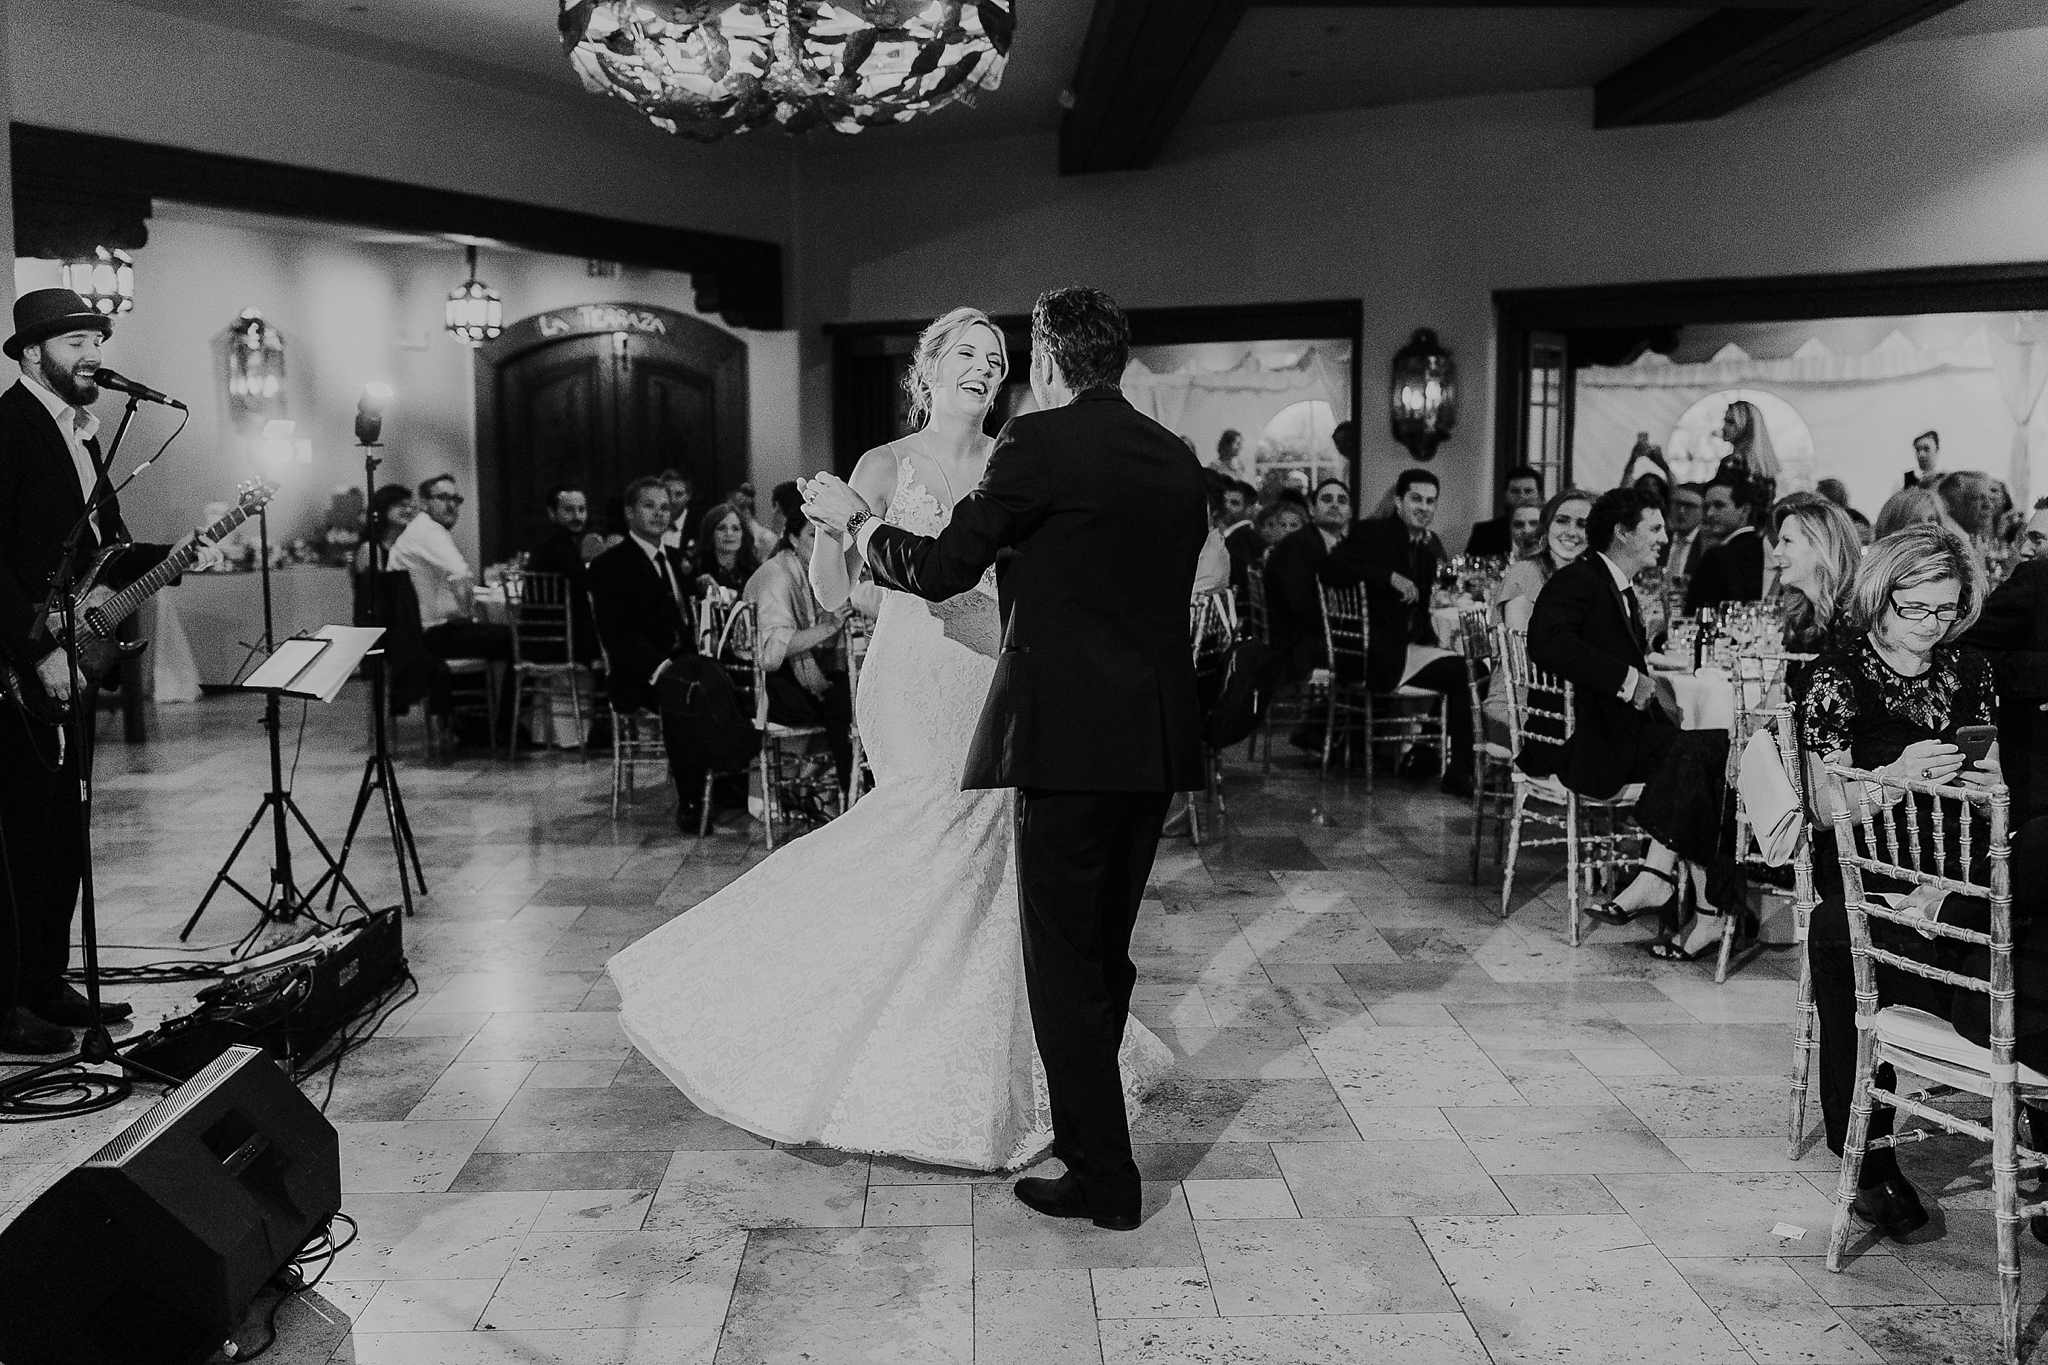 Alicia+lucia+photography+-+albuquerque+wedding+photographer+-+santa+fe+wedding+photography+-+new+mexico+wedding+photographer+-+new+mexico+wedding+dj+-+new+mexico+wedding+band+-+wedding+music_0004.jpg